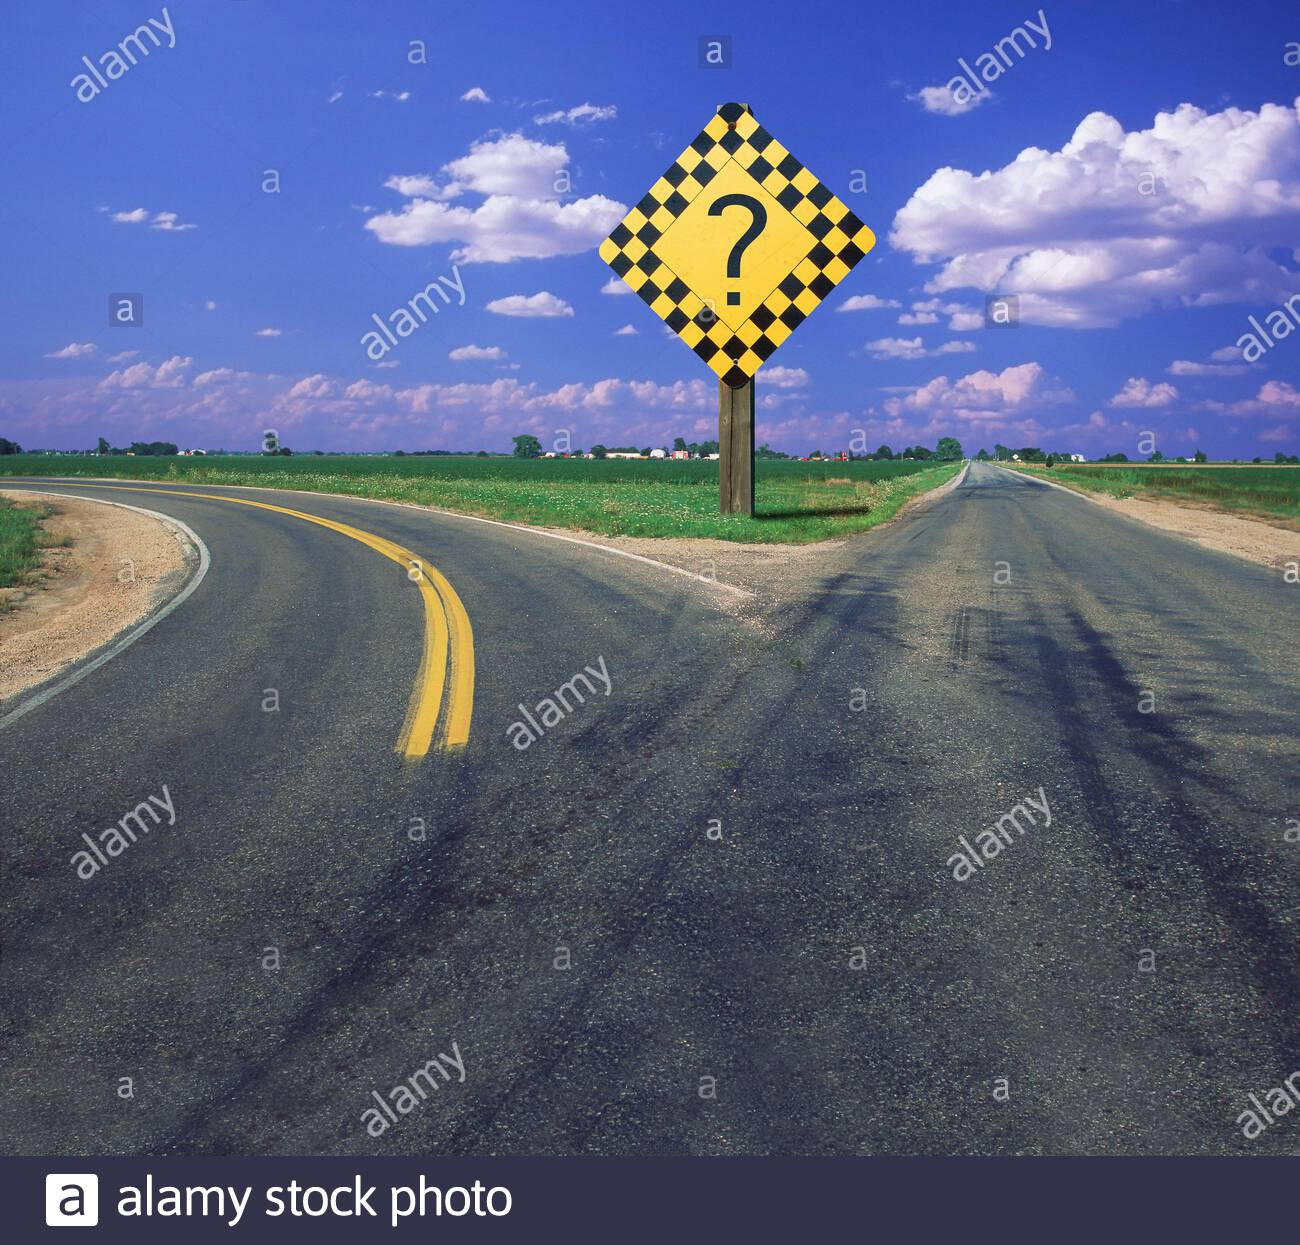 concept-of-a-fork-in-the-road-a-deciding